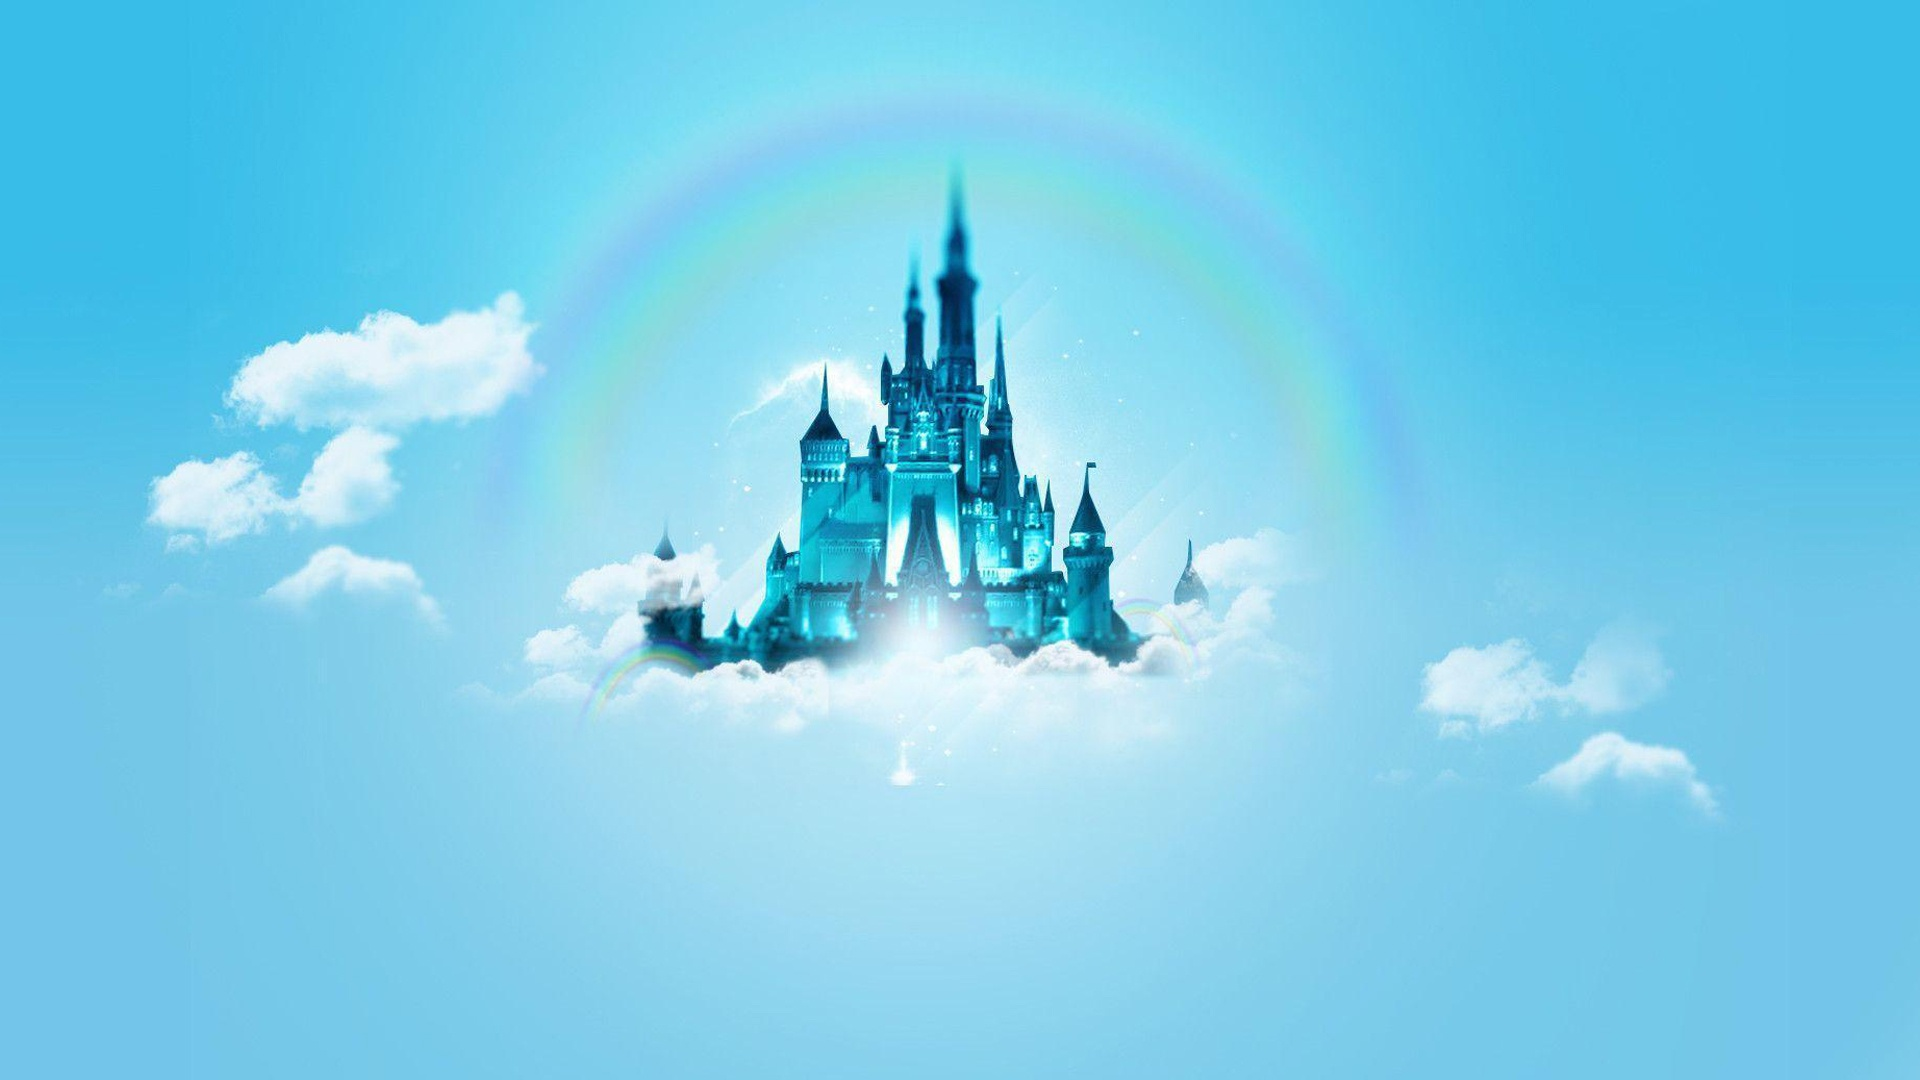 Disney background picture